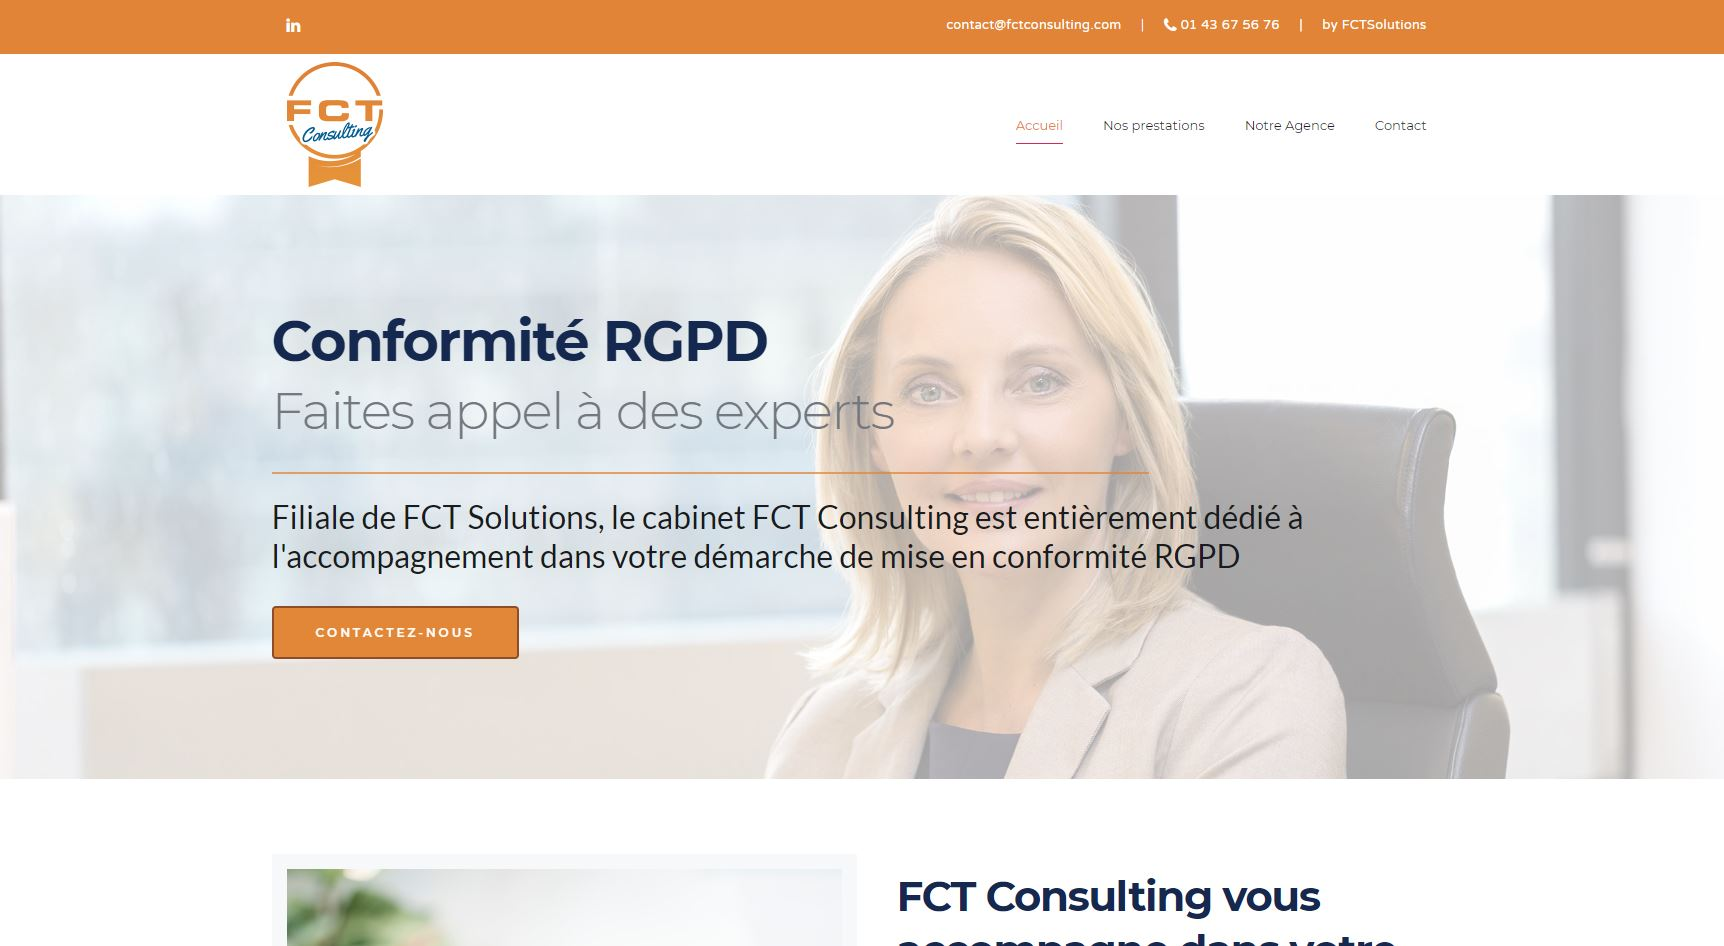 fct_consulting